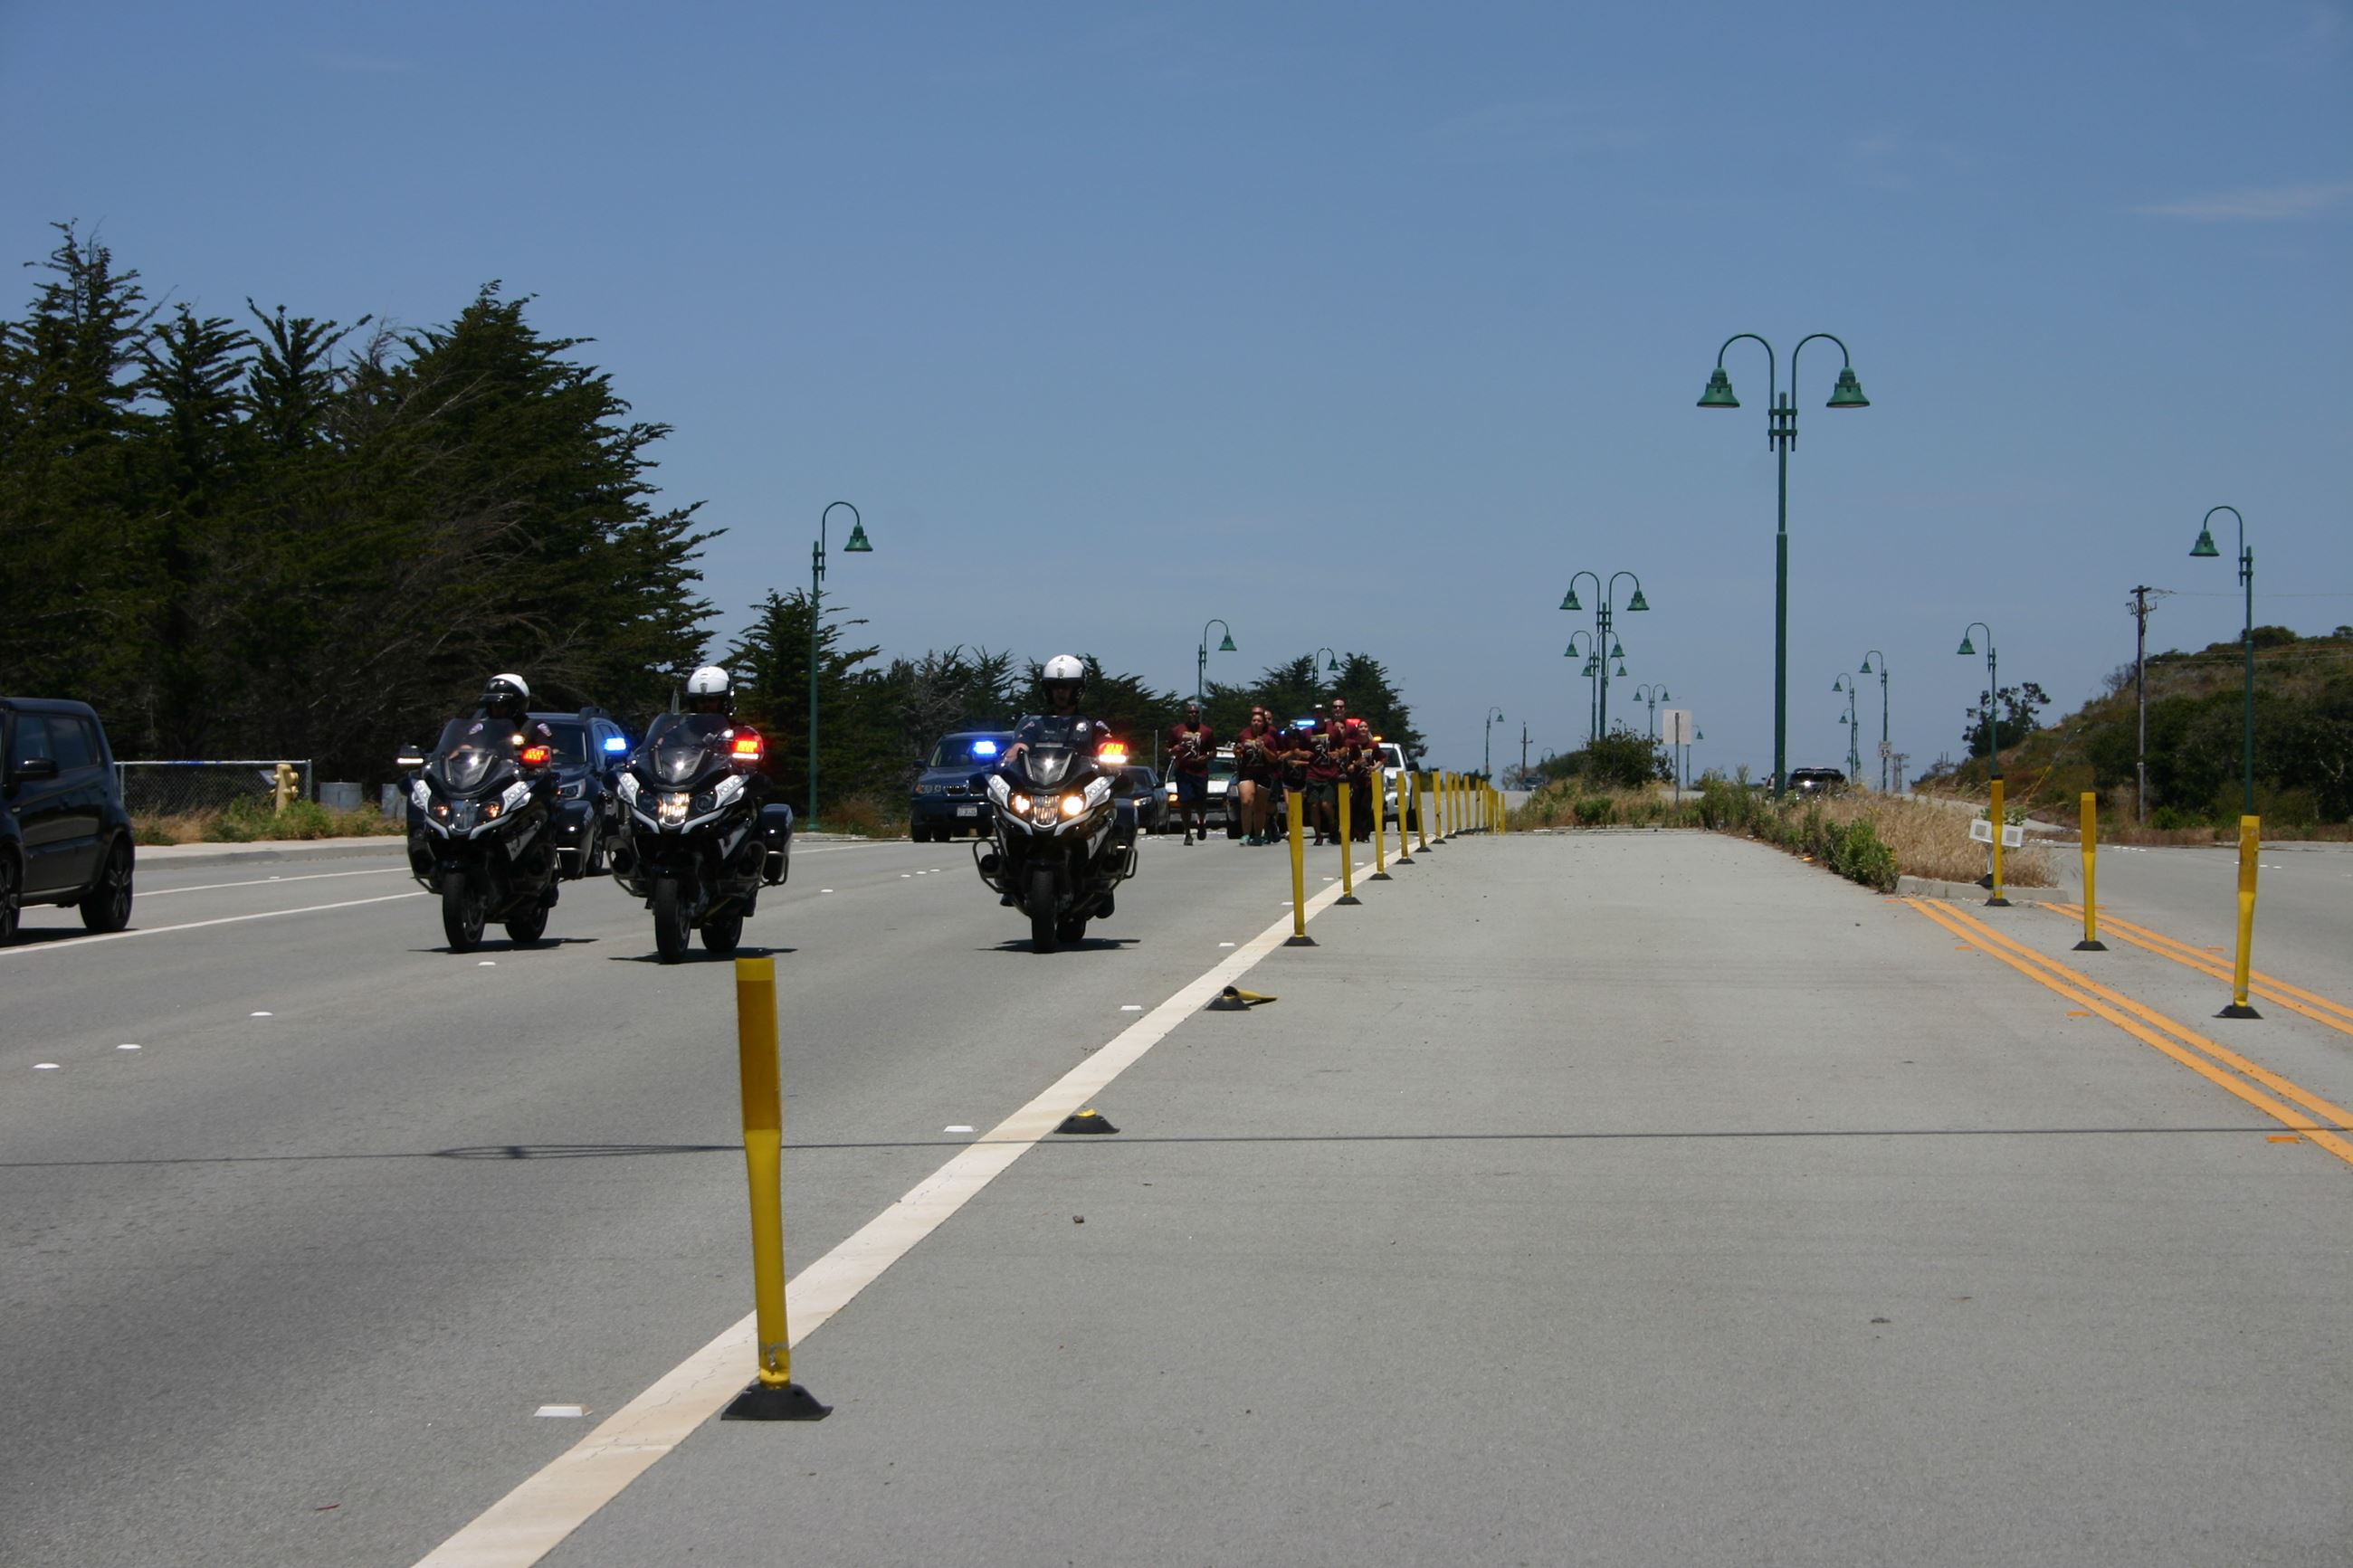 CSUMB PD motorcycles escorting Torch Run participants along road